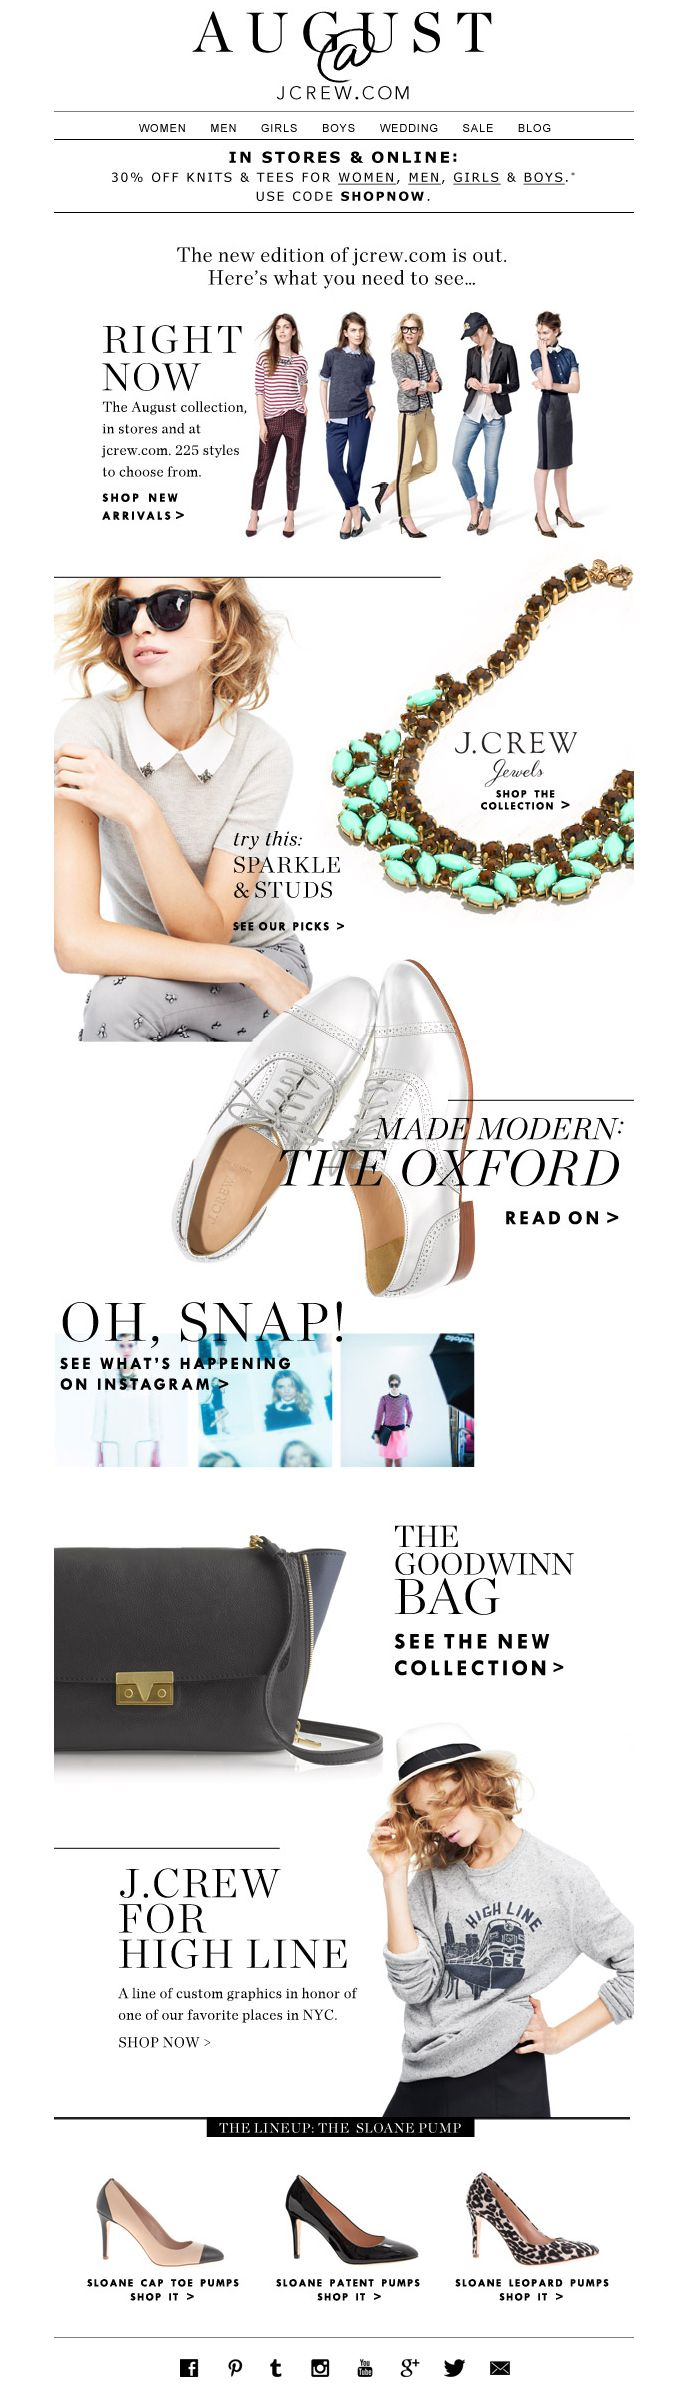 #newsletter J.Crew 08.2013 Subject: The August edition: what's new at jcrew.com